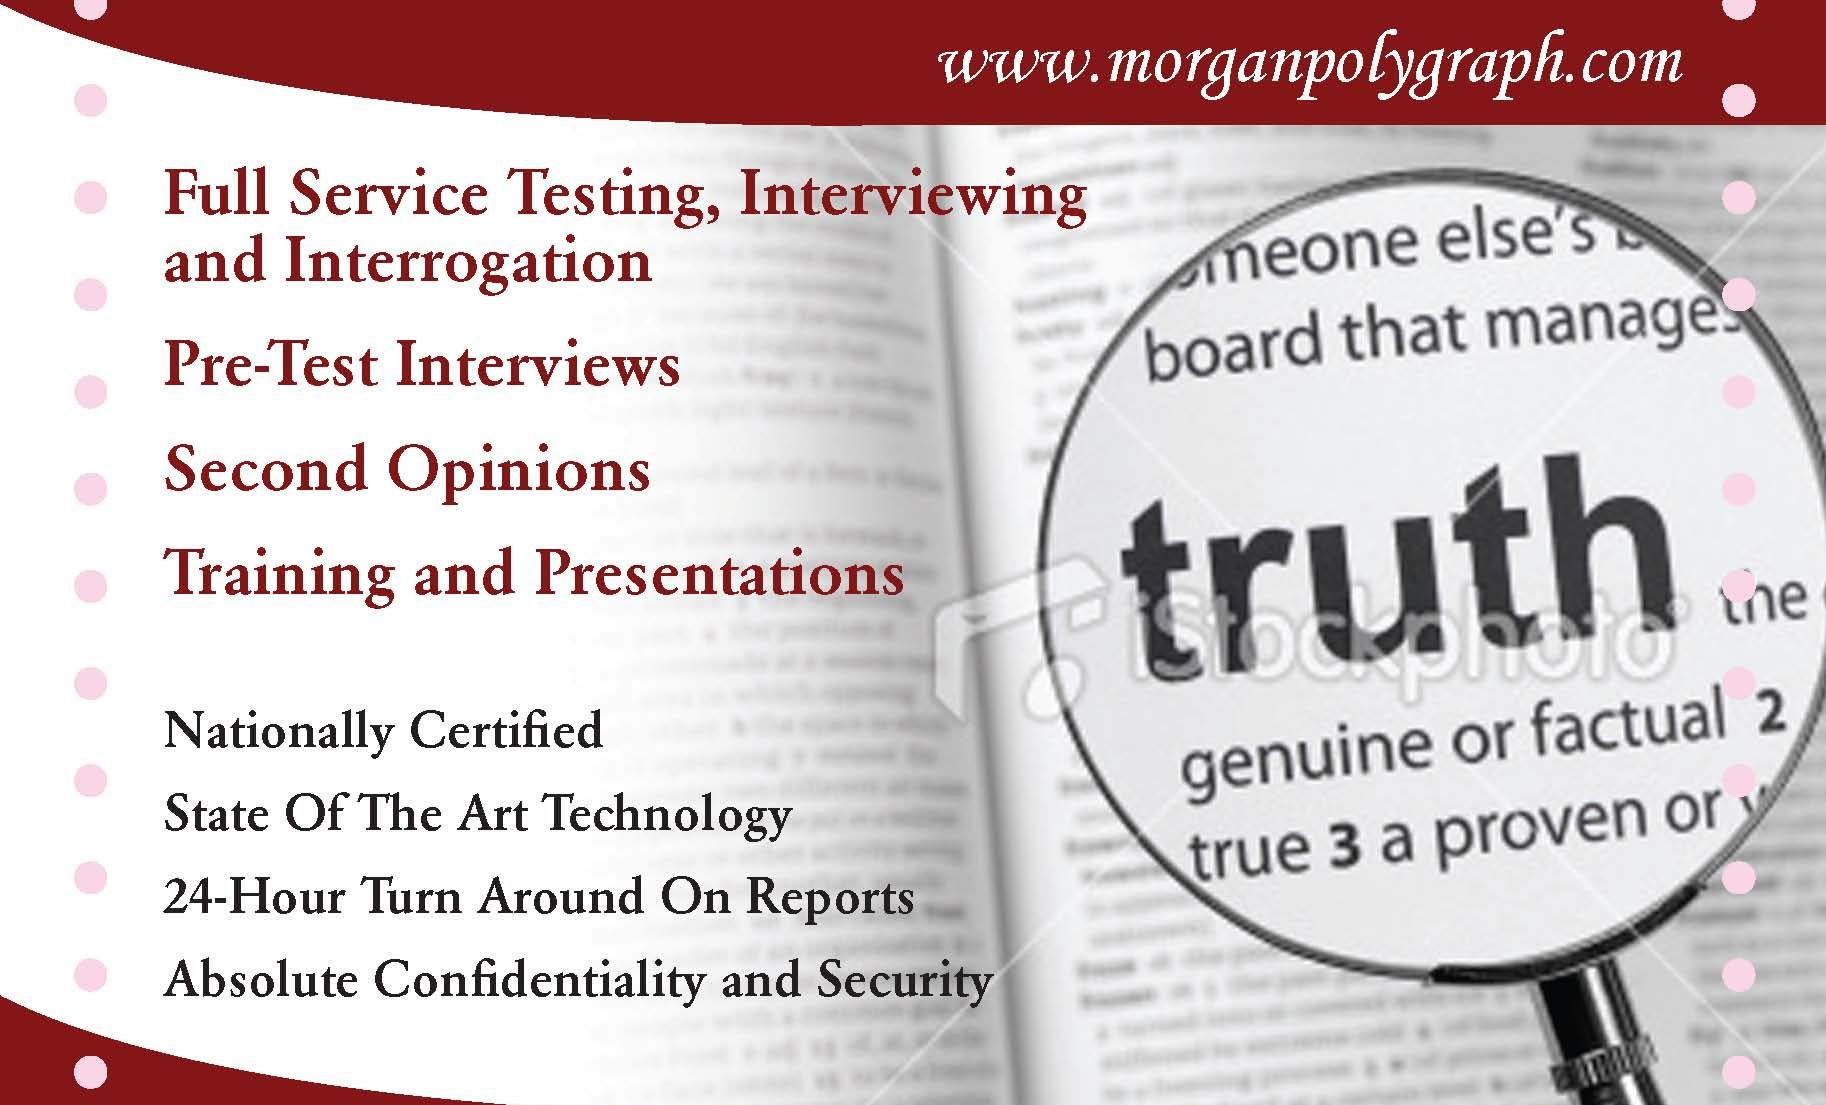 Morgan Polygraph and Credibility Assessment